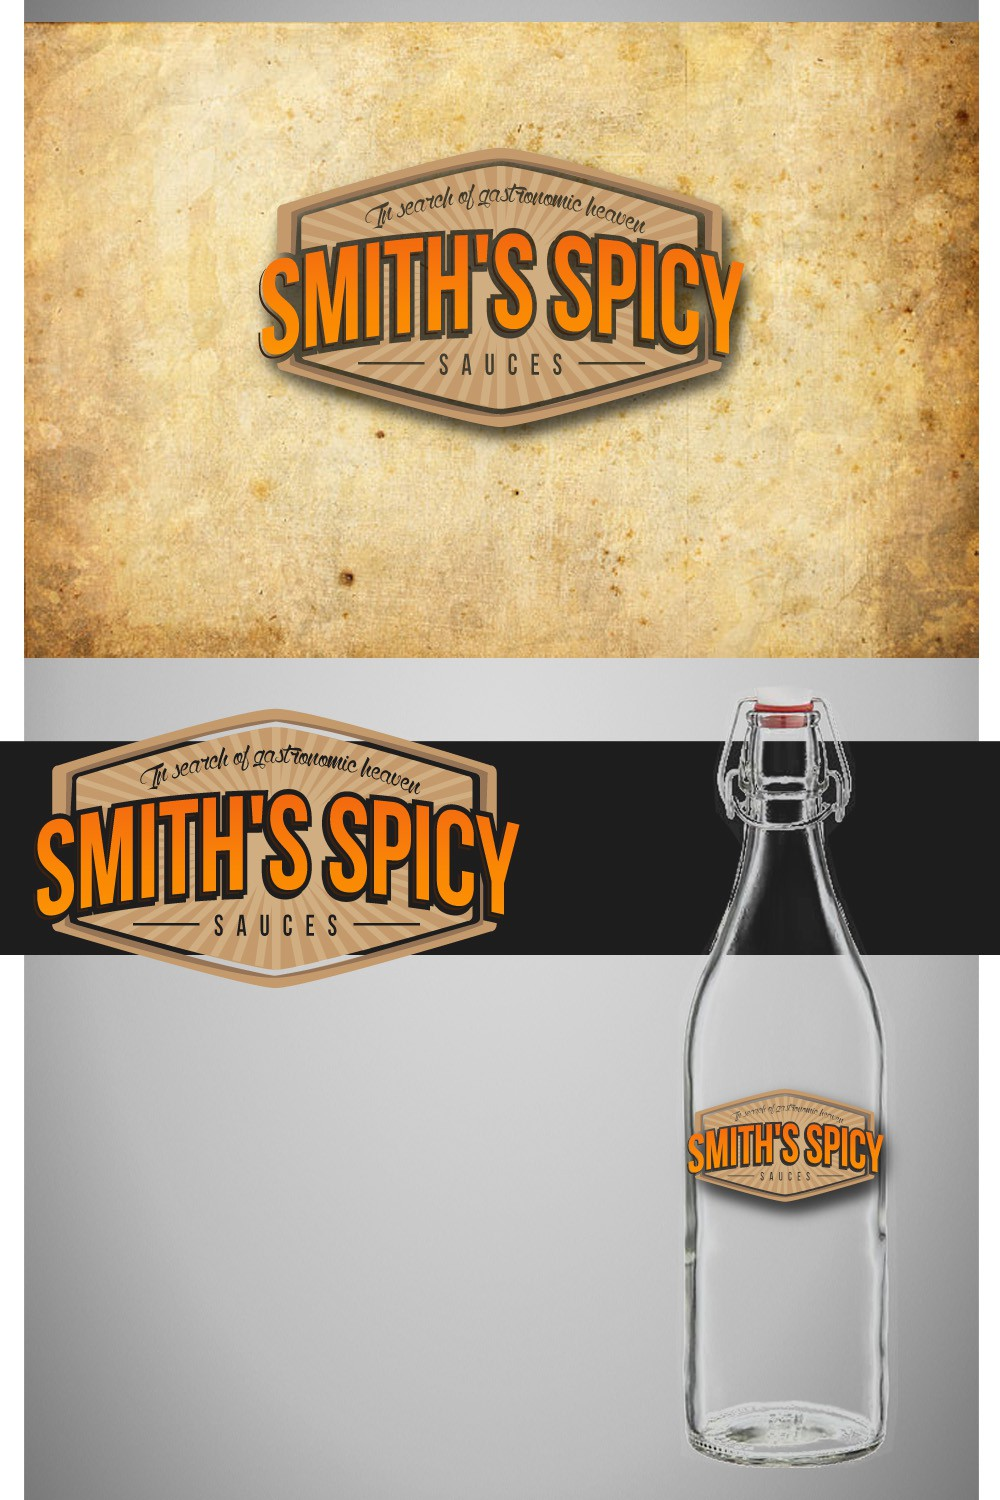 Modern Spicy Sauce Company looking for kick ass Logo!